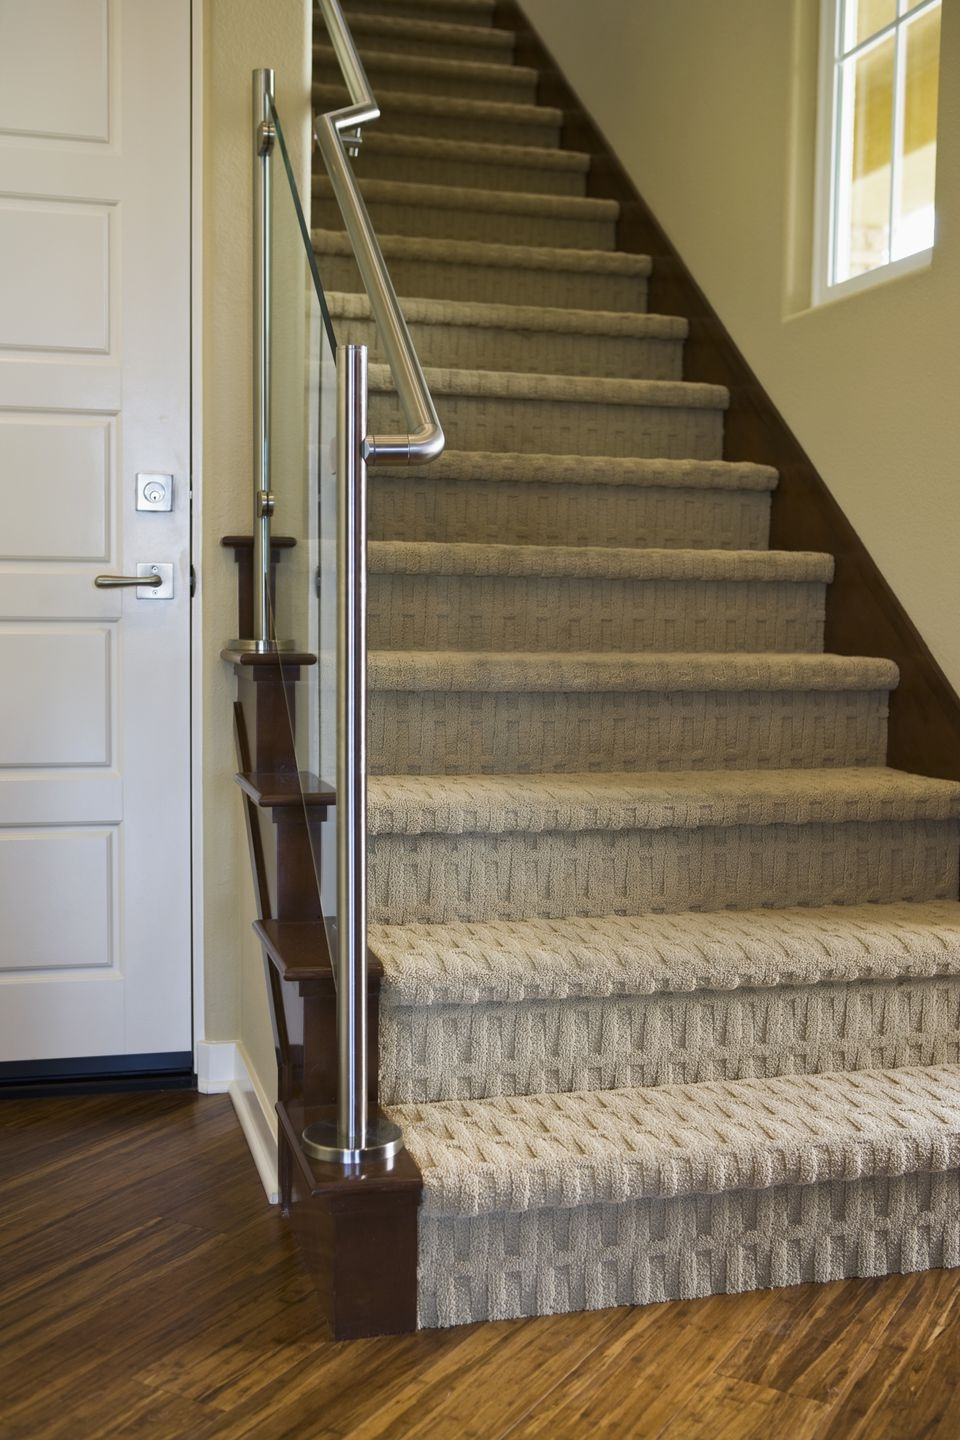 Patterned Carpet With Recessed Lighting   Carpet Colors For Stairs